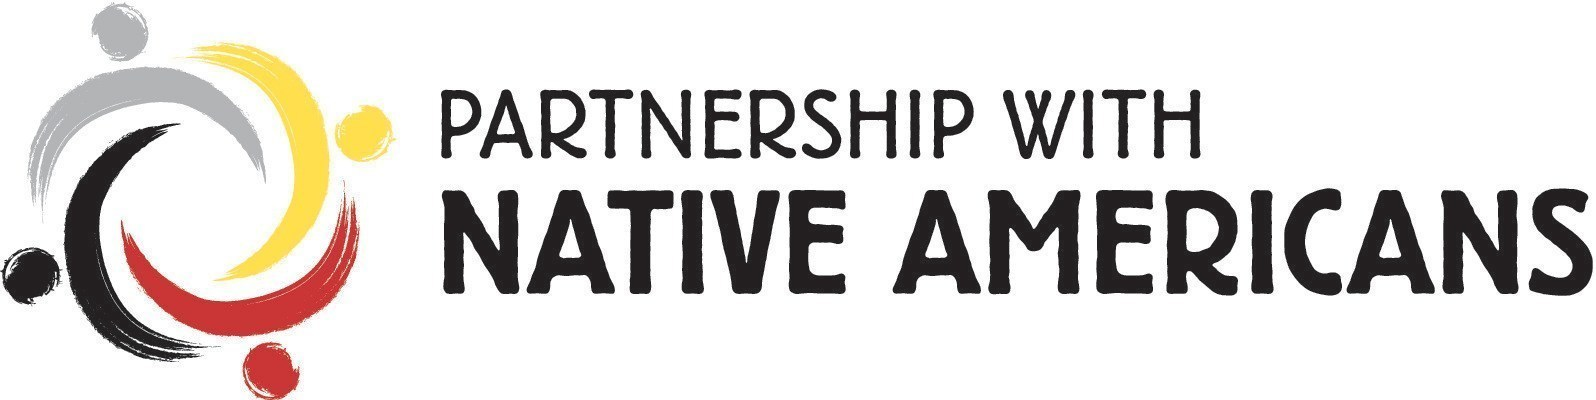 Partnership With Native Americans, a 501c3 nonprofit organization, provides consistent aid and services for Native Americans with the highest needs in the U.S.